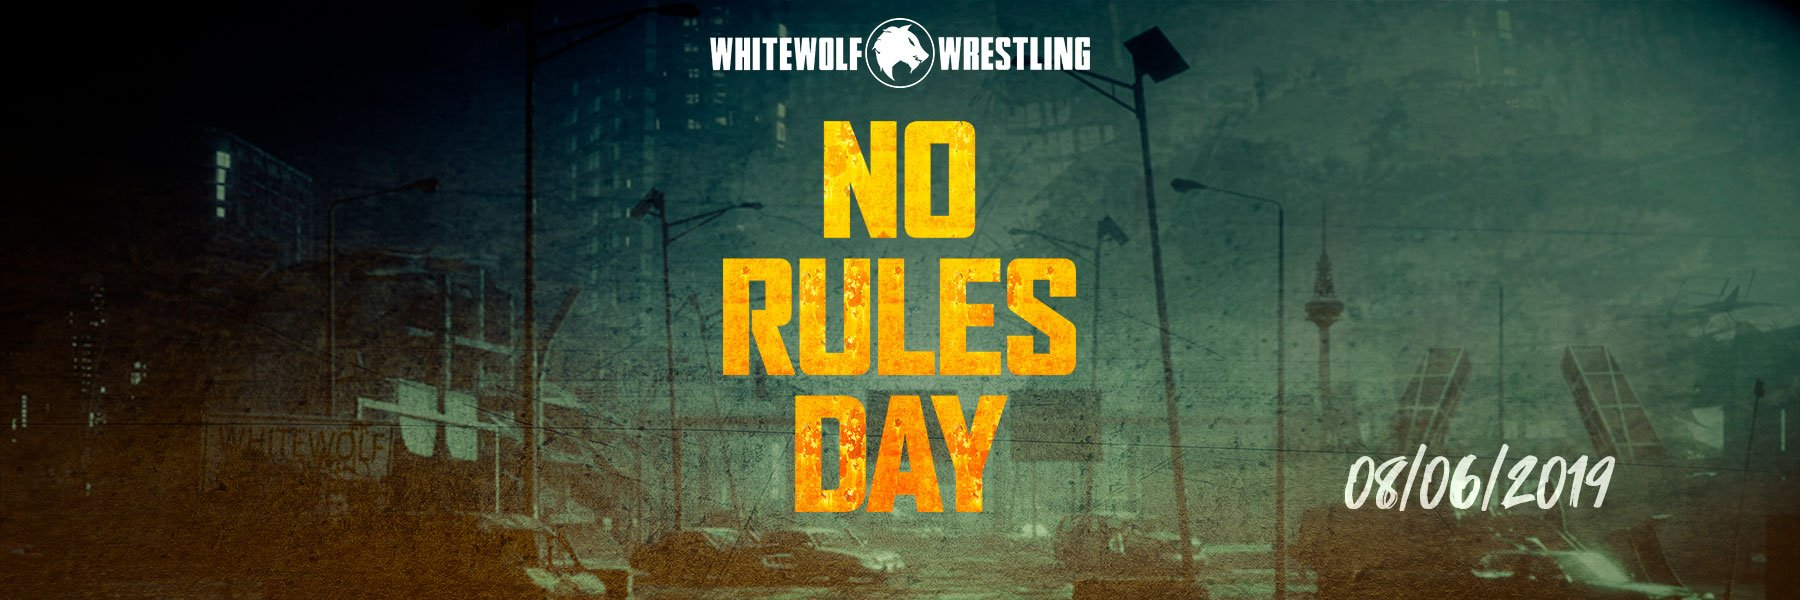 No Rules Day - Full Show - 08/06/2019